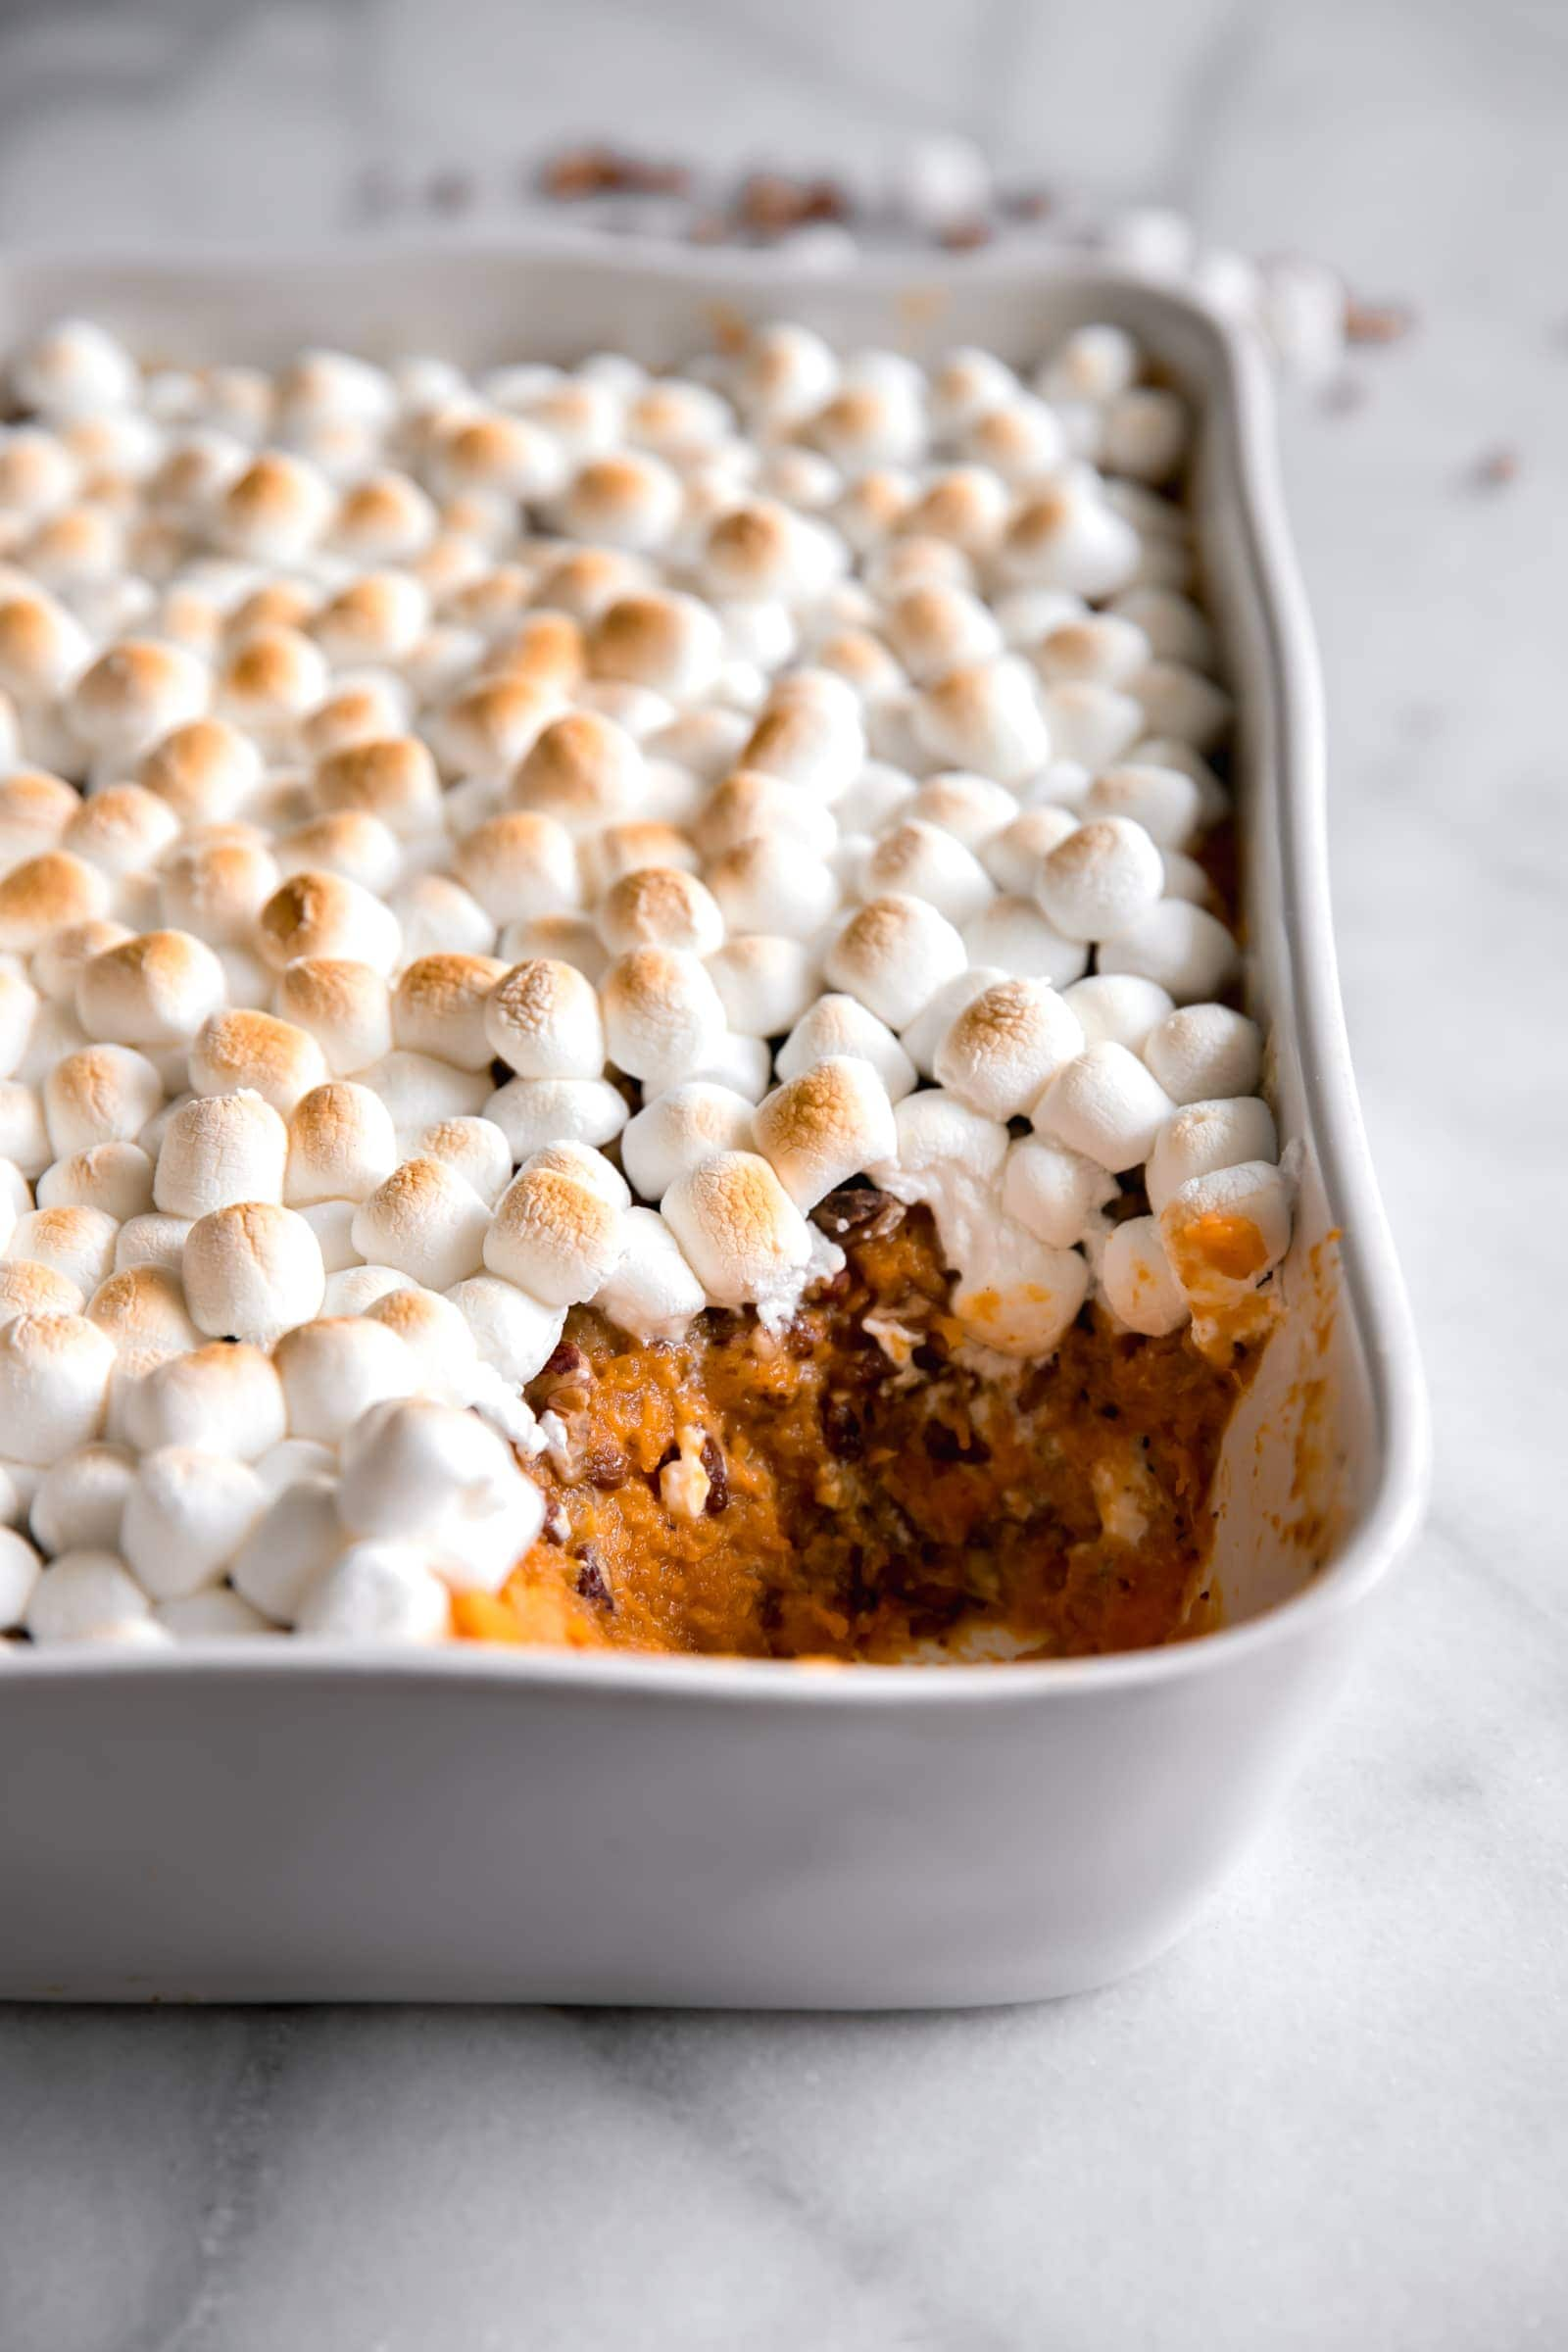 Easy Sweet Potato Casserole Recipe - A Sassy Spoon